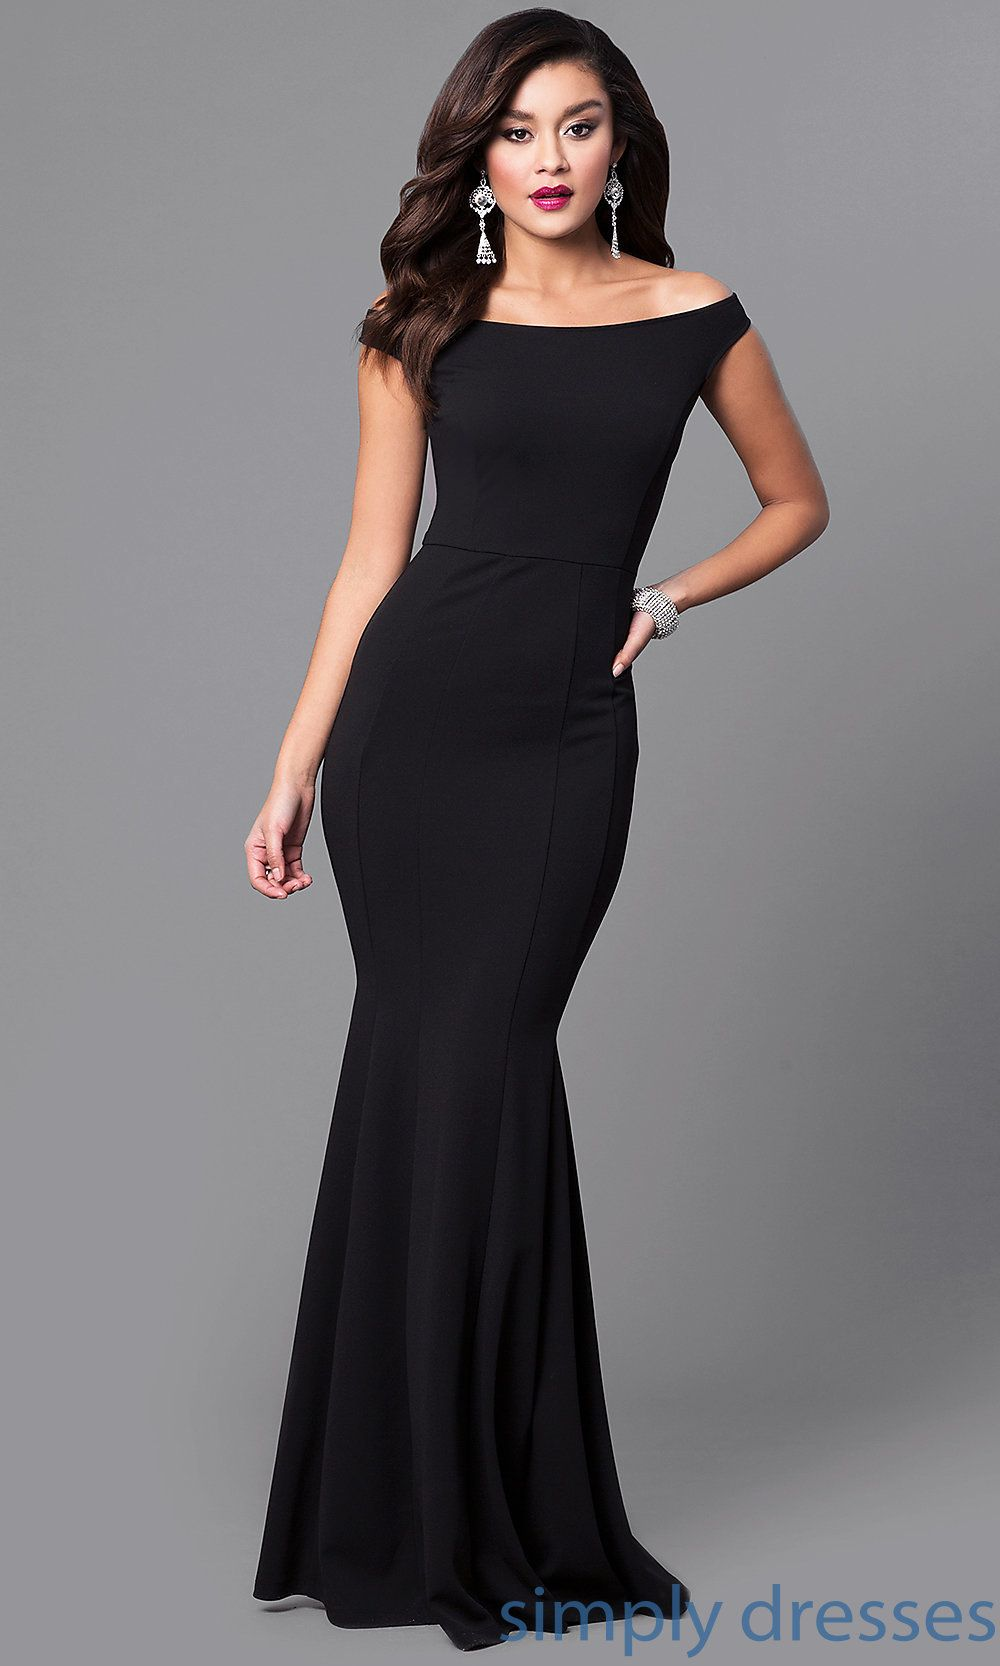 Off The Shoulder Mermaid Long Black Formal Dress In 2019 Black